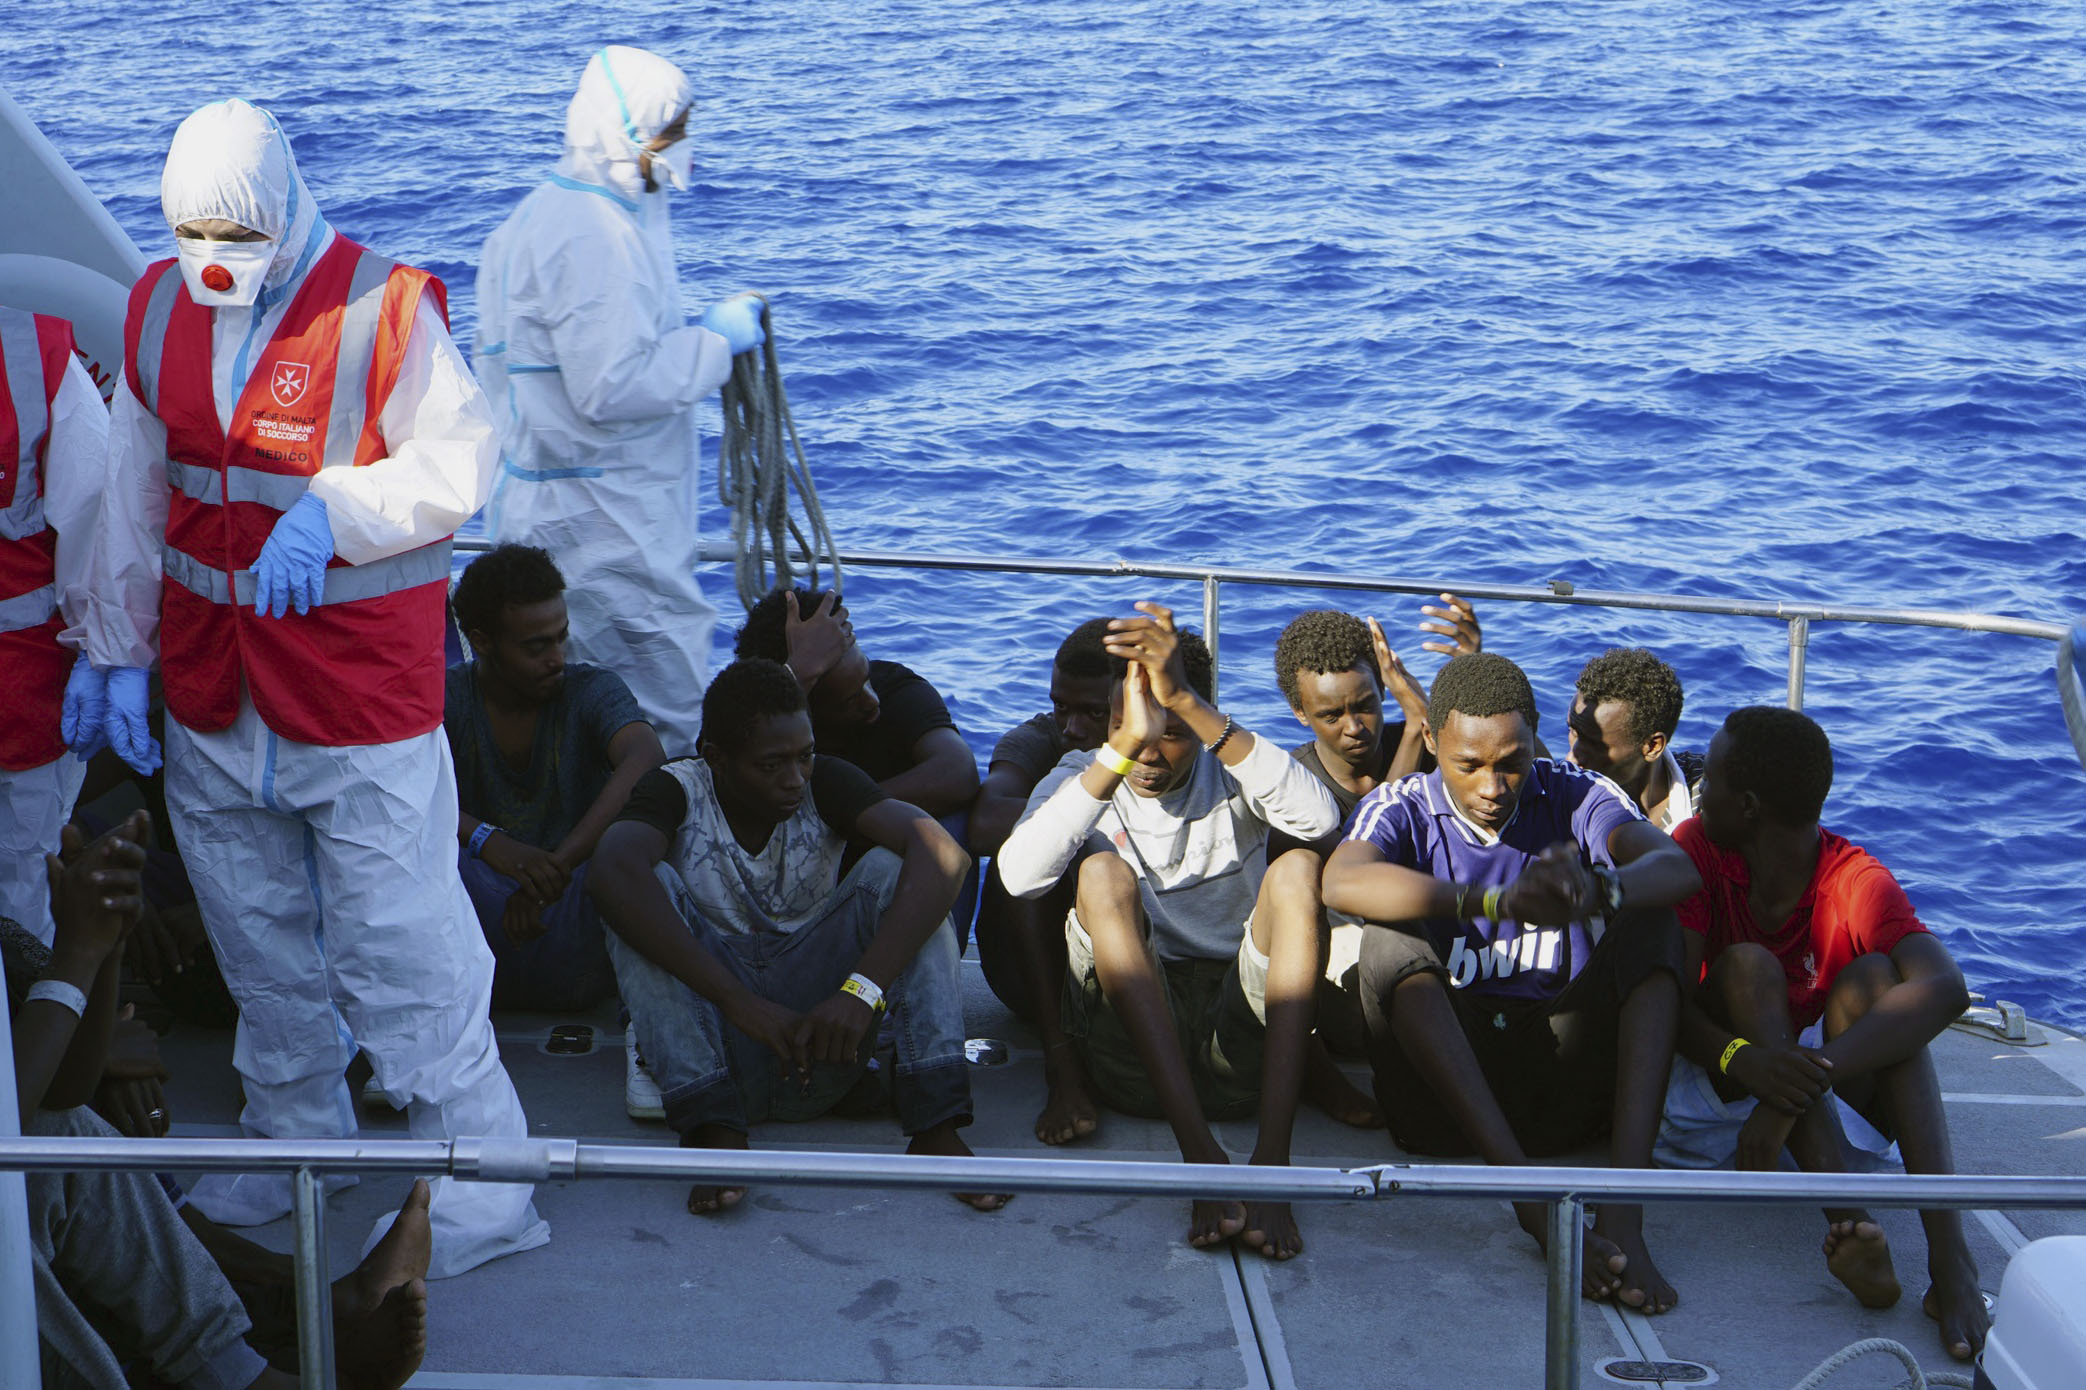 Italys Salvini agrees to let 27 minors off migrant ship